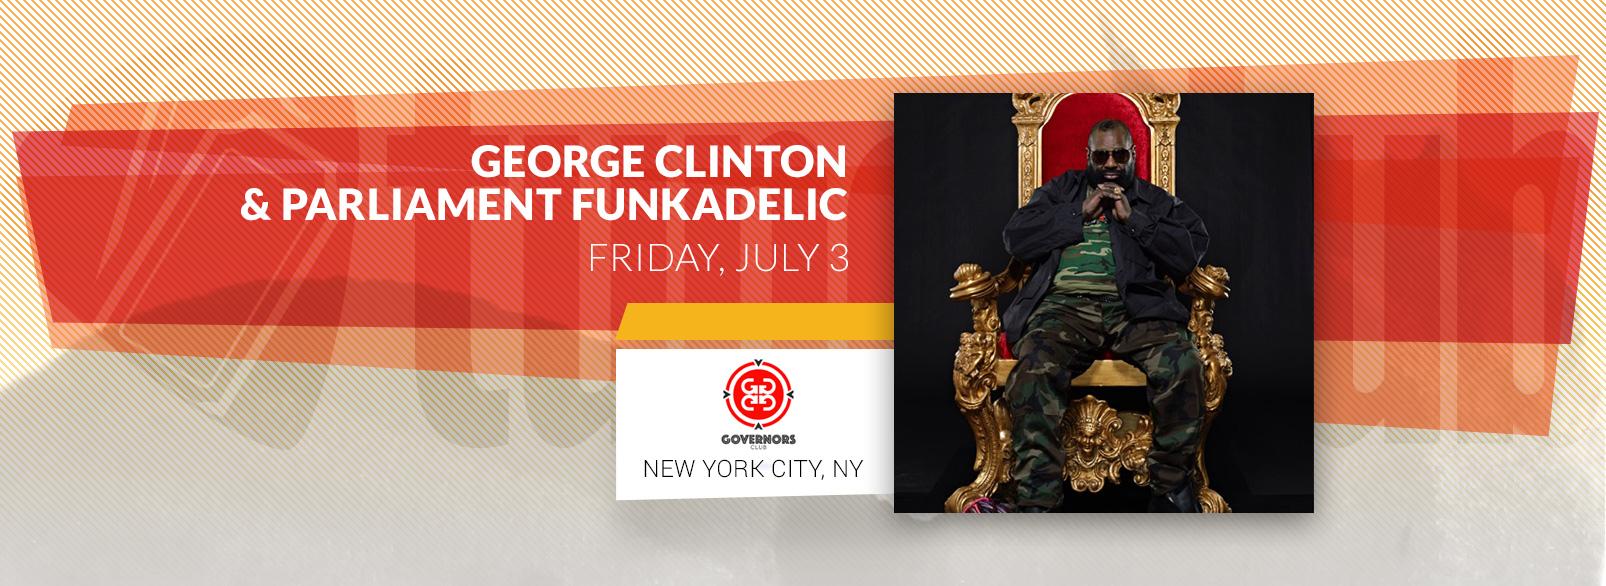 George Clinton & Parliment Funkadelic